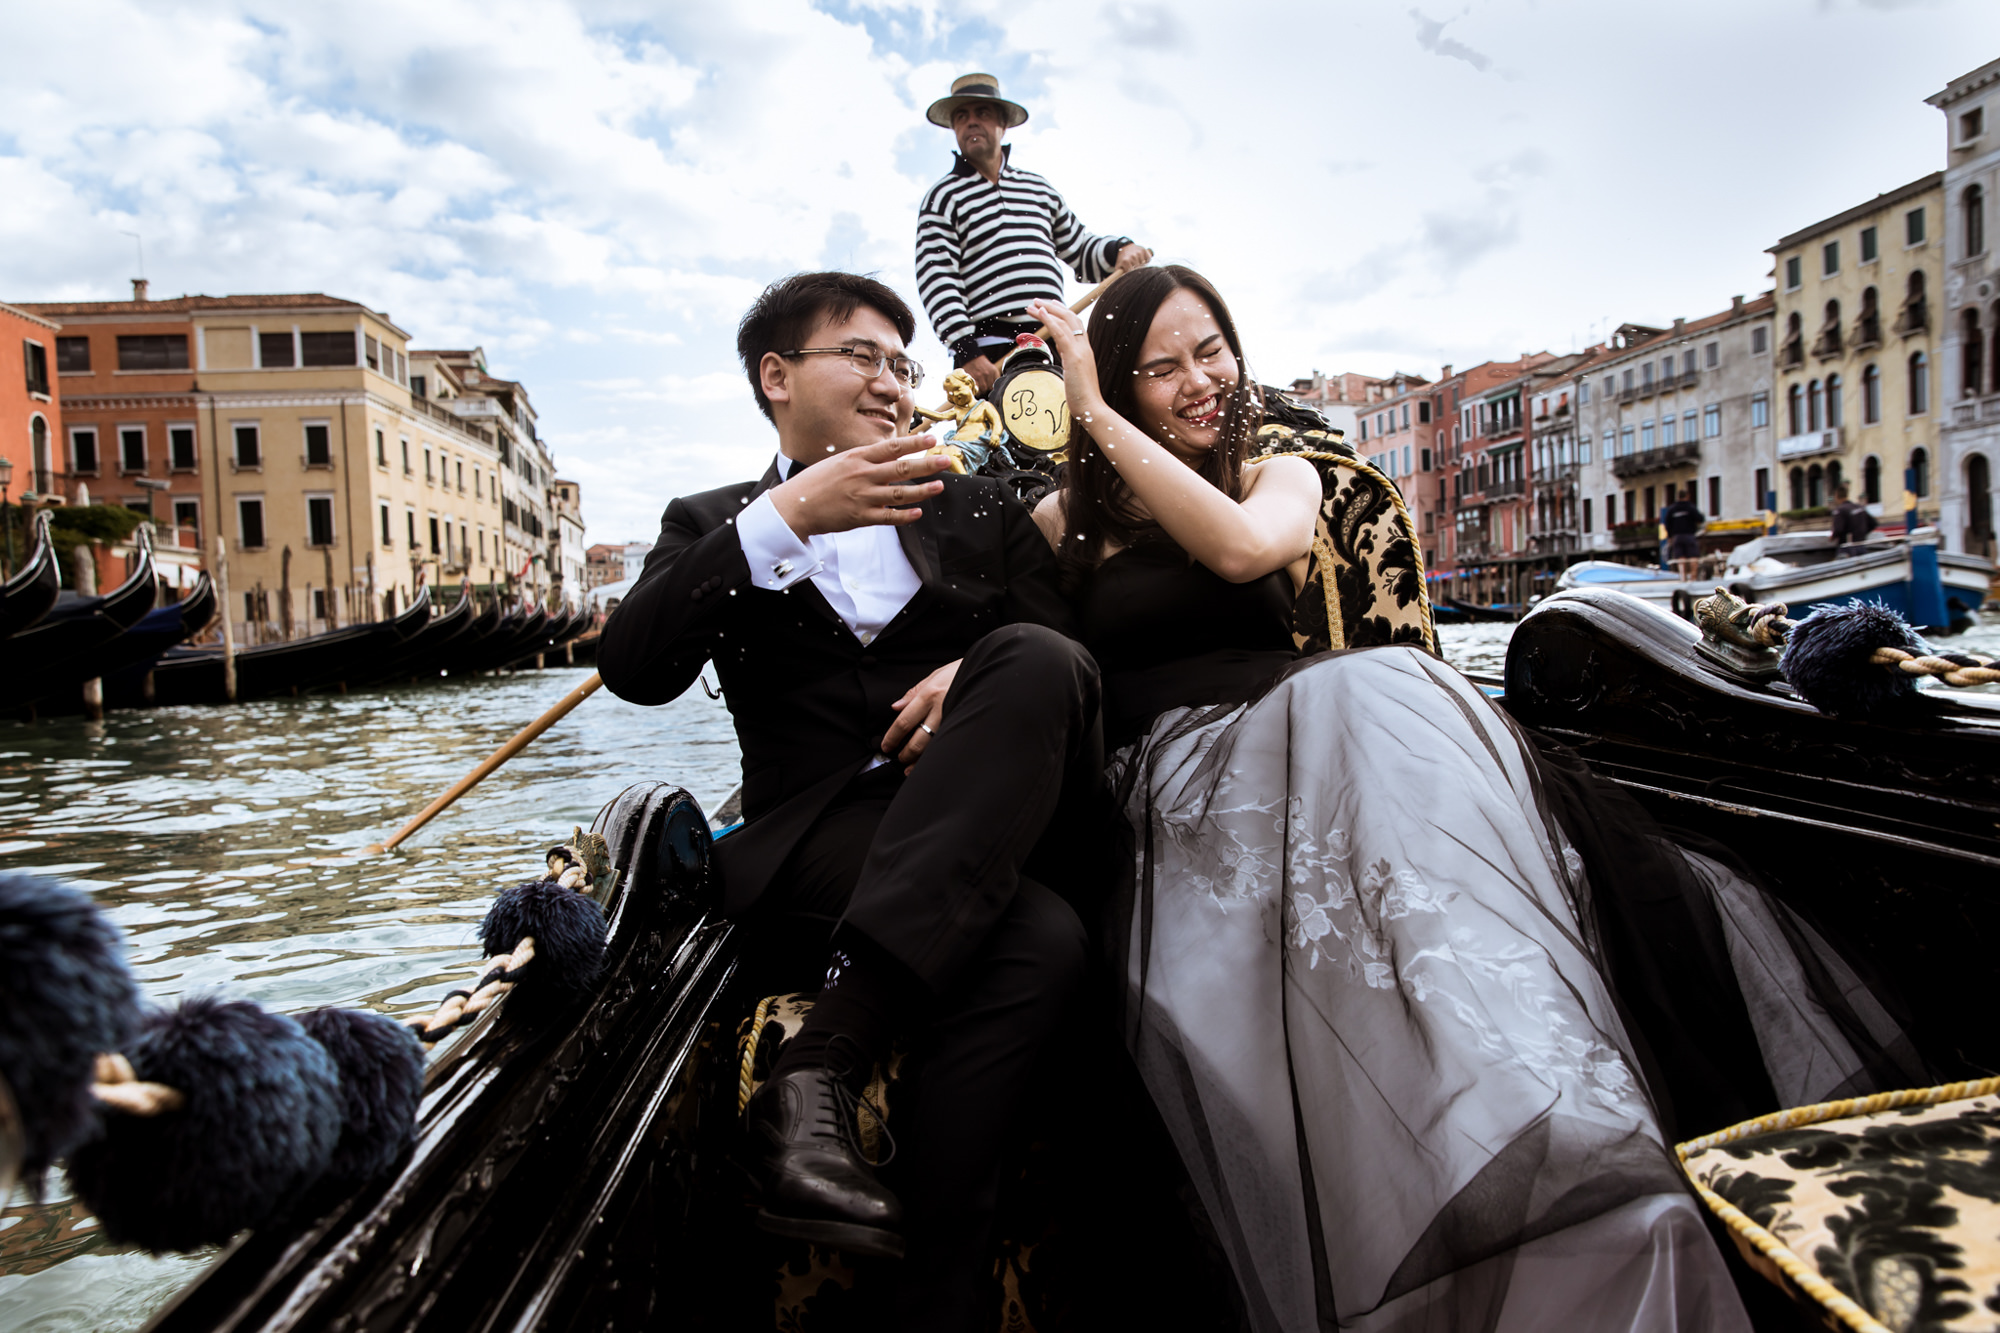 Groom splashing bride on Gondola Ride photo by Fotobelle: Isabelle Hattink